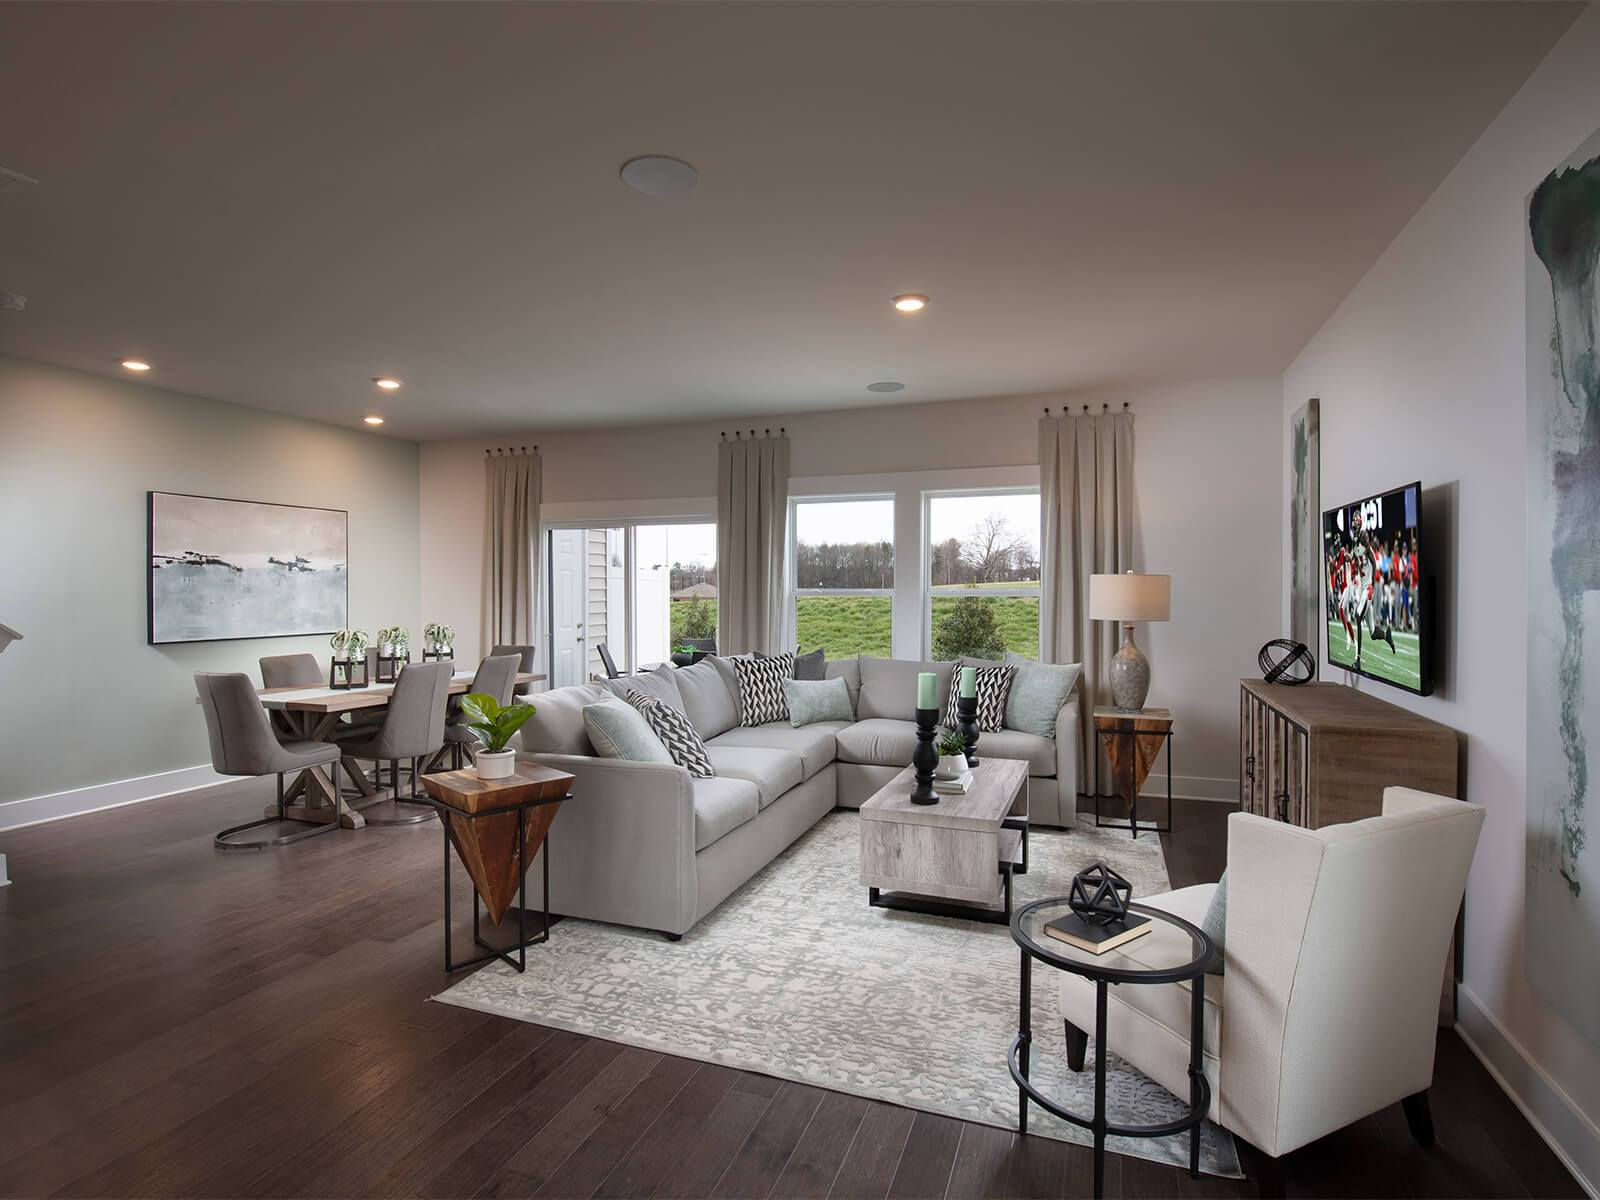 The open-concept floorplan allows for easy entertaining. Photography from Echo Ridge.